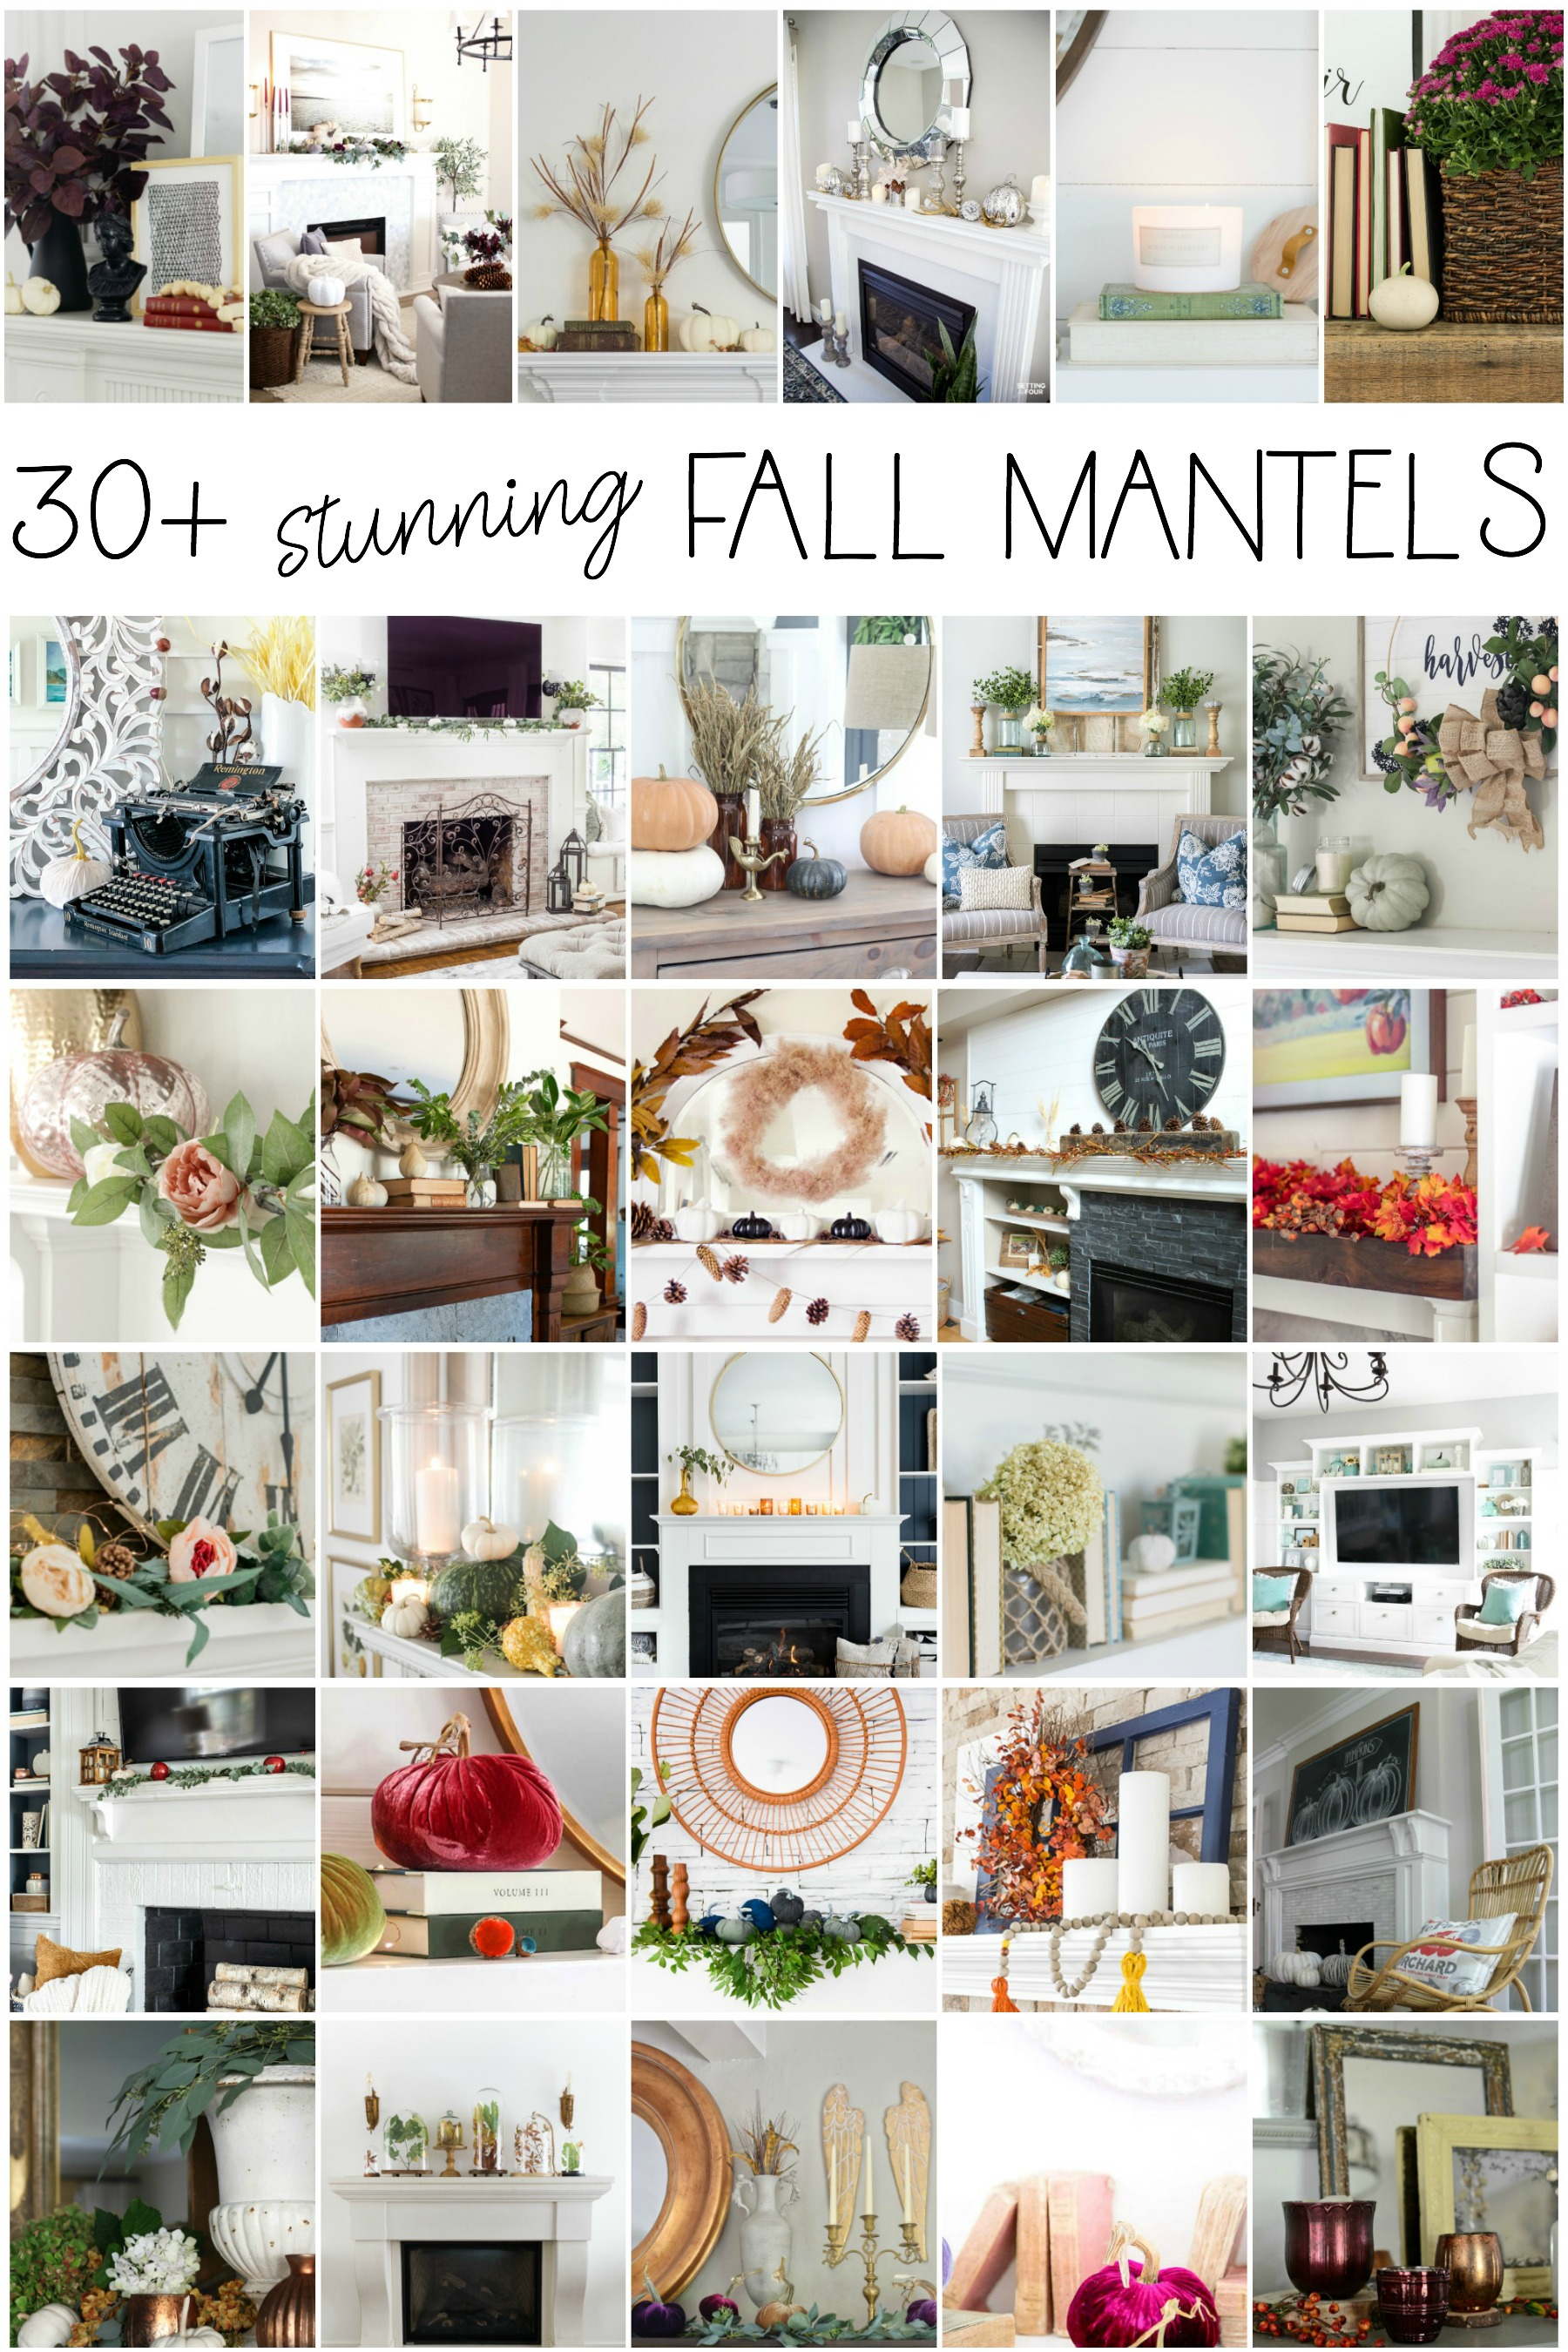 over 30 absolutely stunning fall mantel and fall vignette ideas Seasonal Simplicity Fall Series